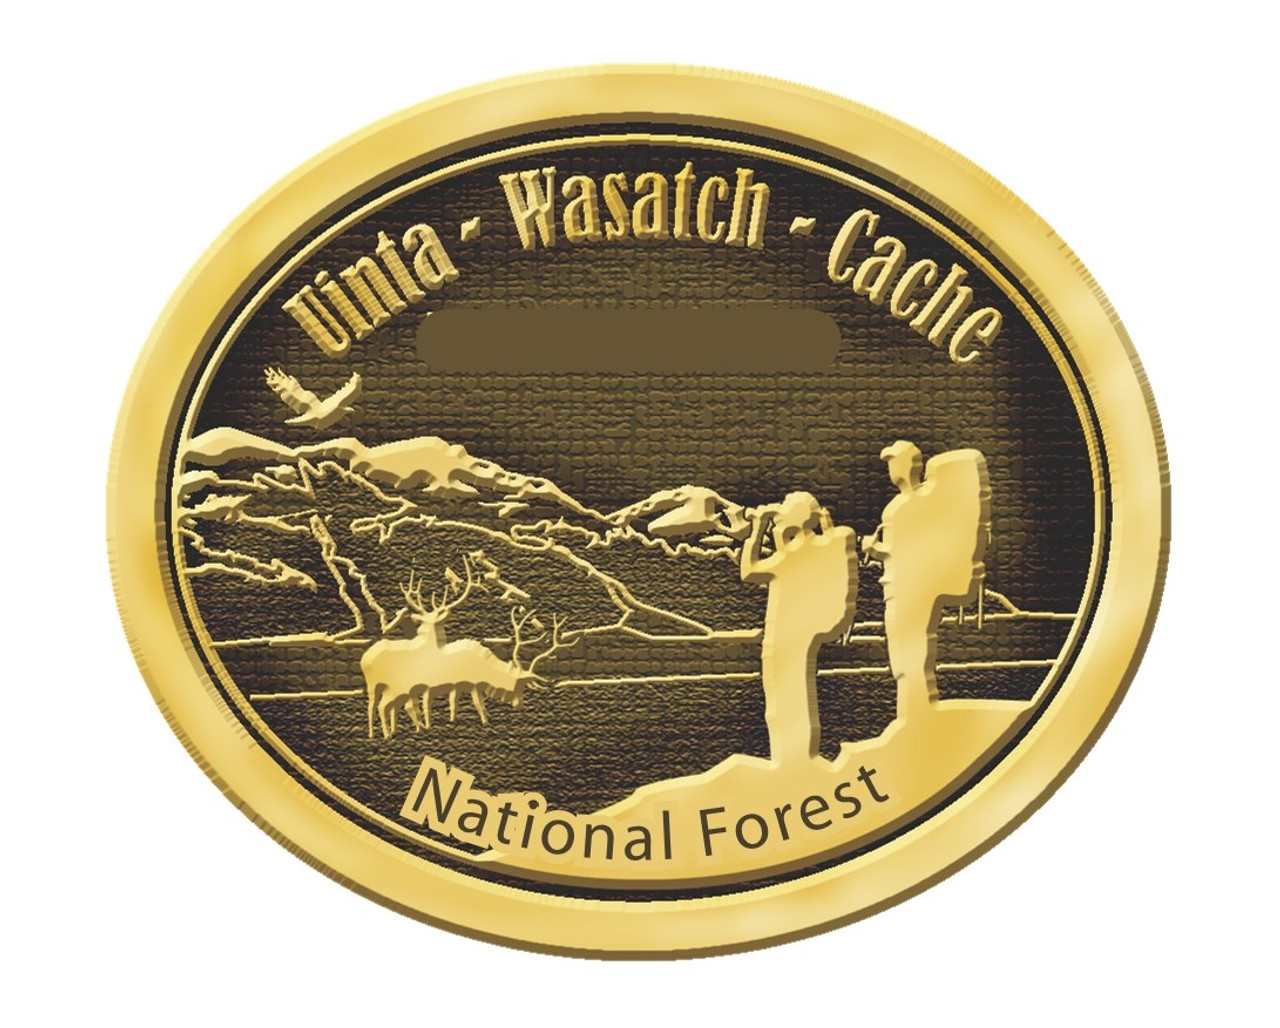 Uinta-Wasatch-Cache National Forest Buckle